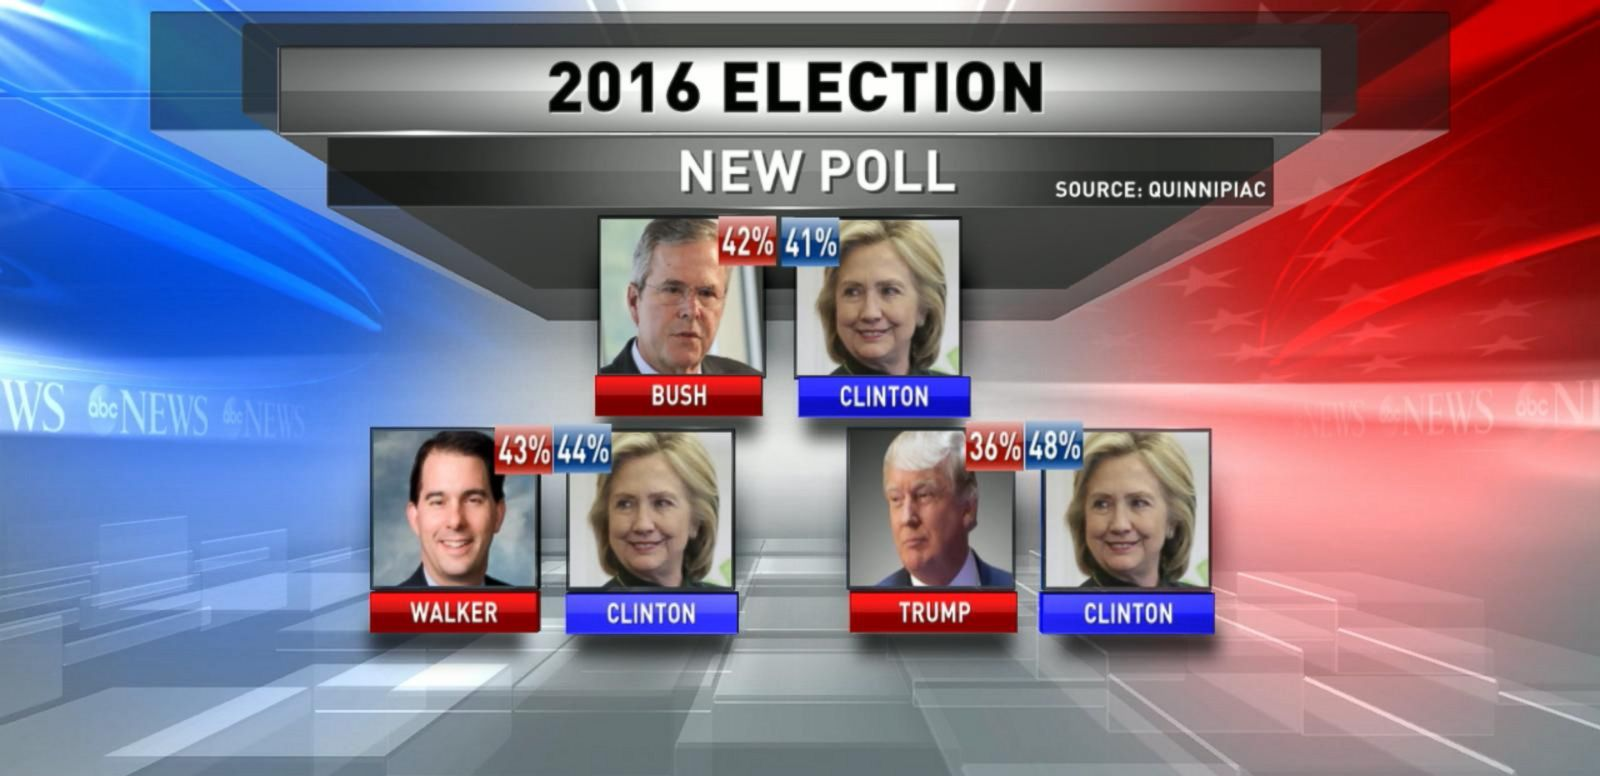 VIDEO: New Poll Shows Trump Remains on Top of GOP Field